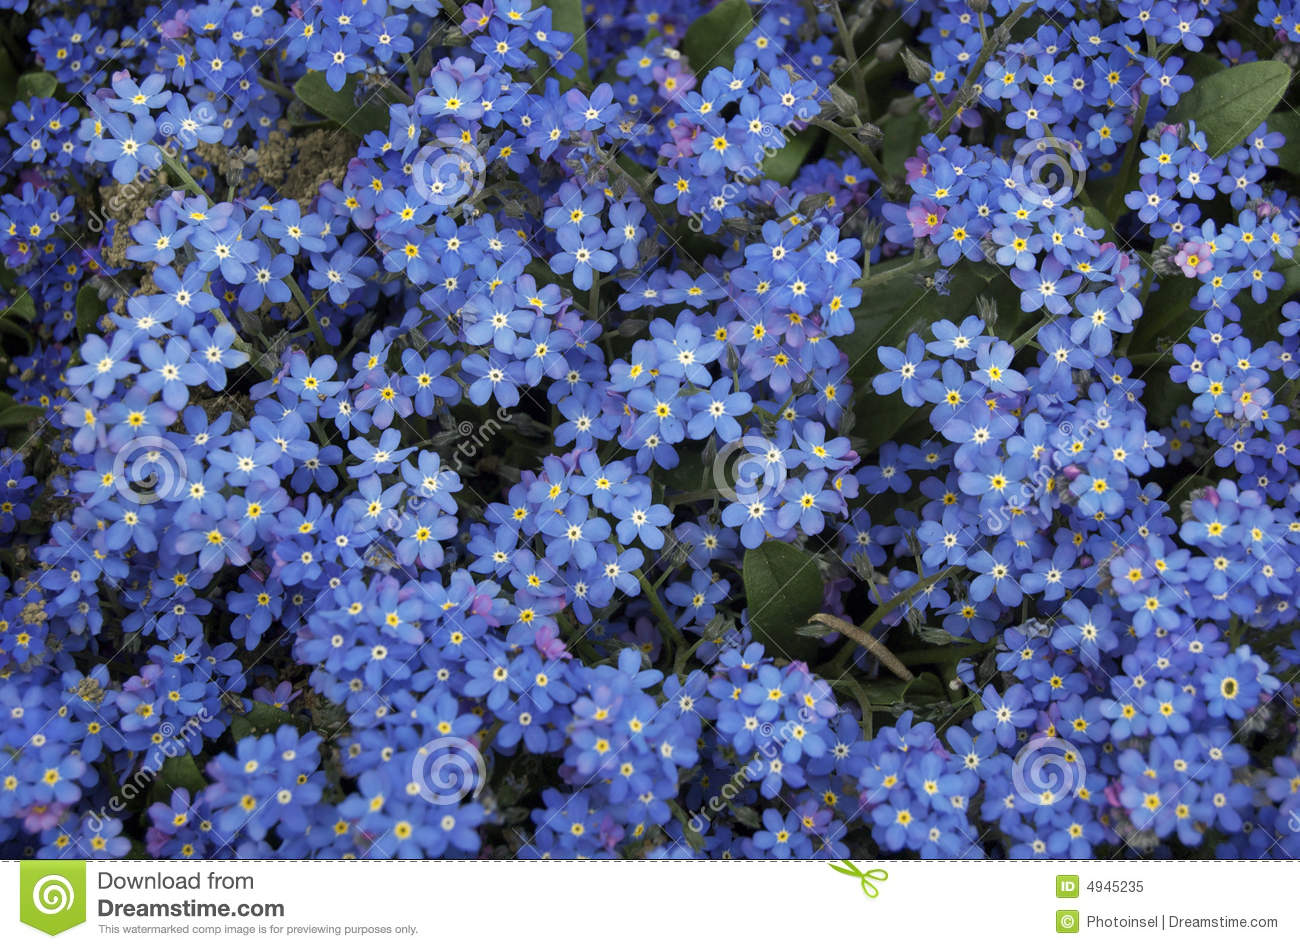 blue forget me not flowers stock image image of love 4945235. Black Bedroom Furniture Sets. Home Design Ideas